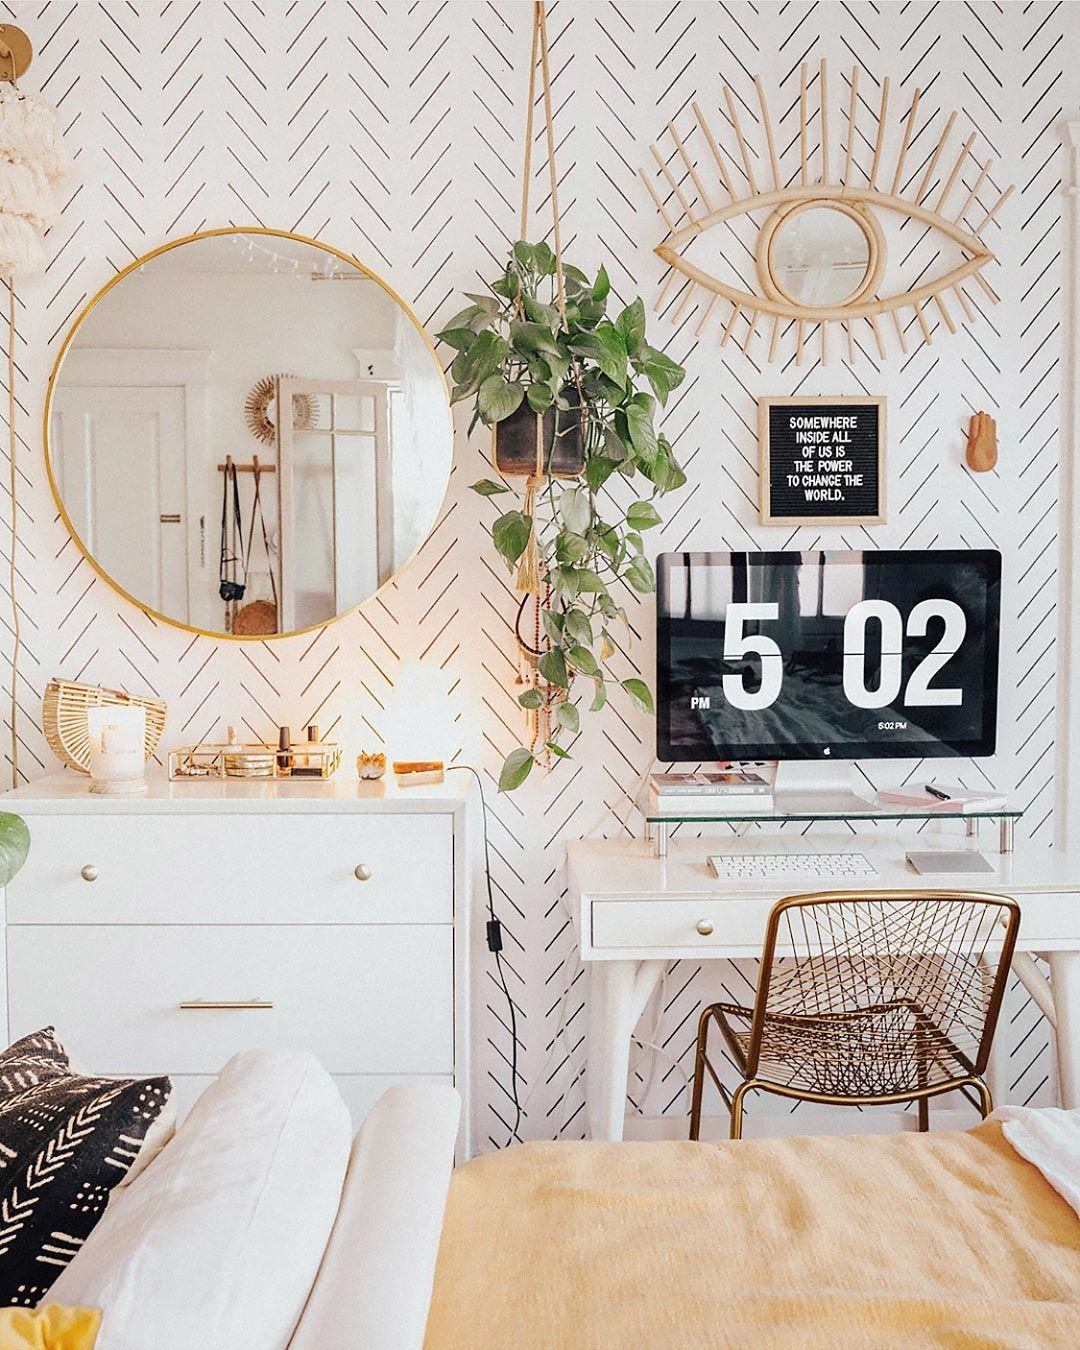 How To Decorate With Removable Wallpaper: Modern Delicate Herringbone Design